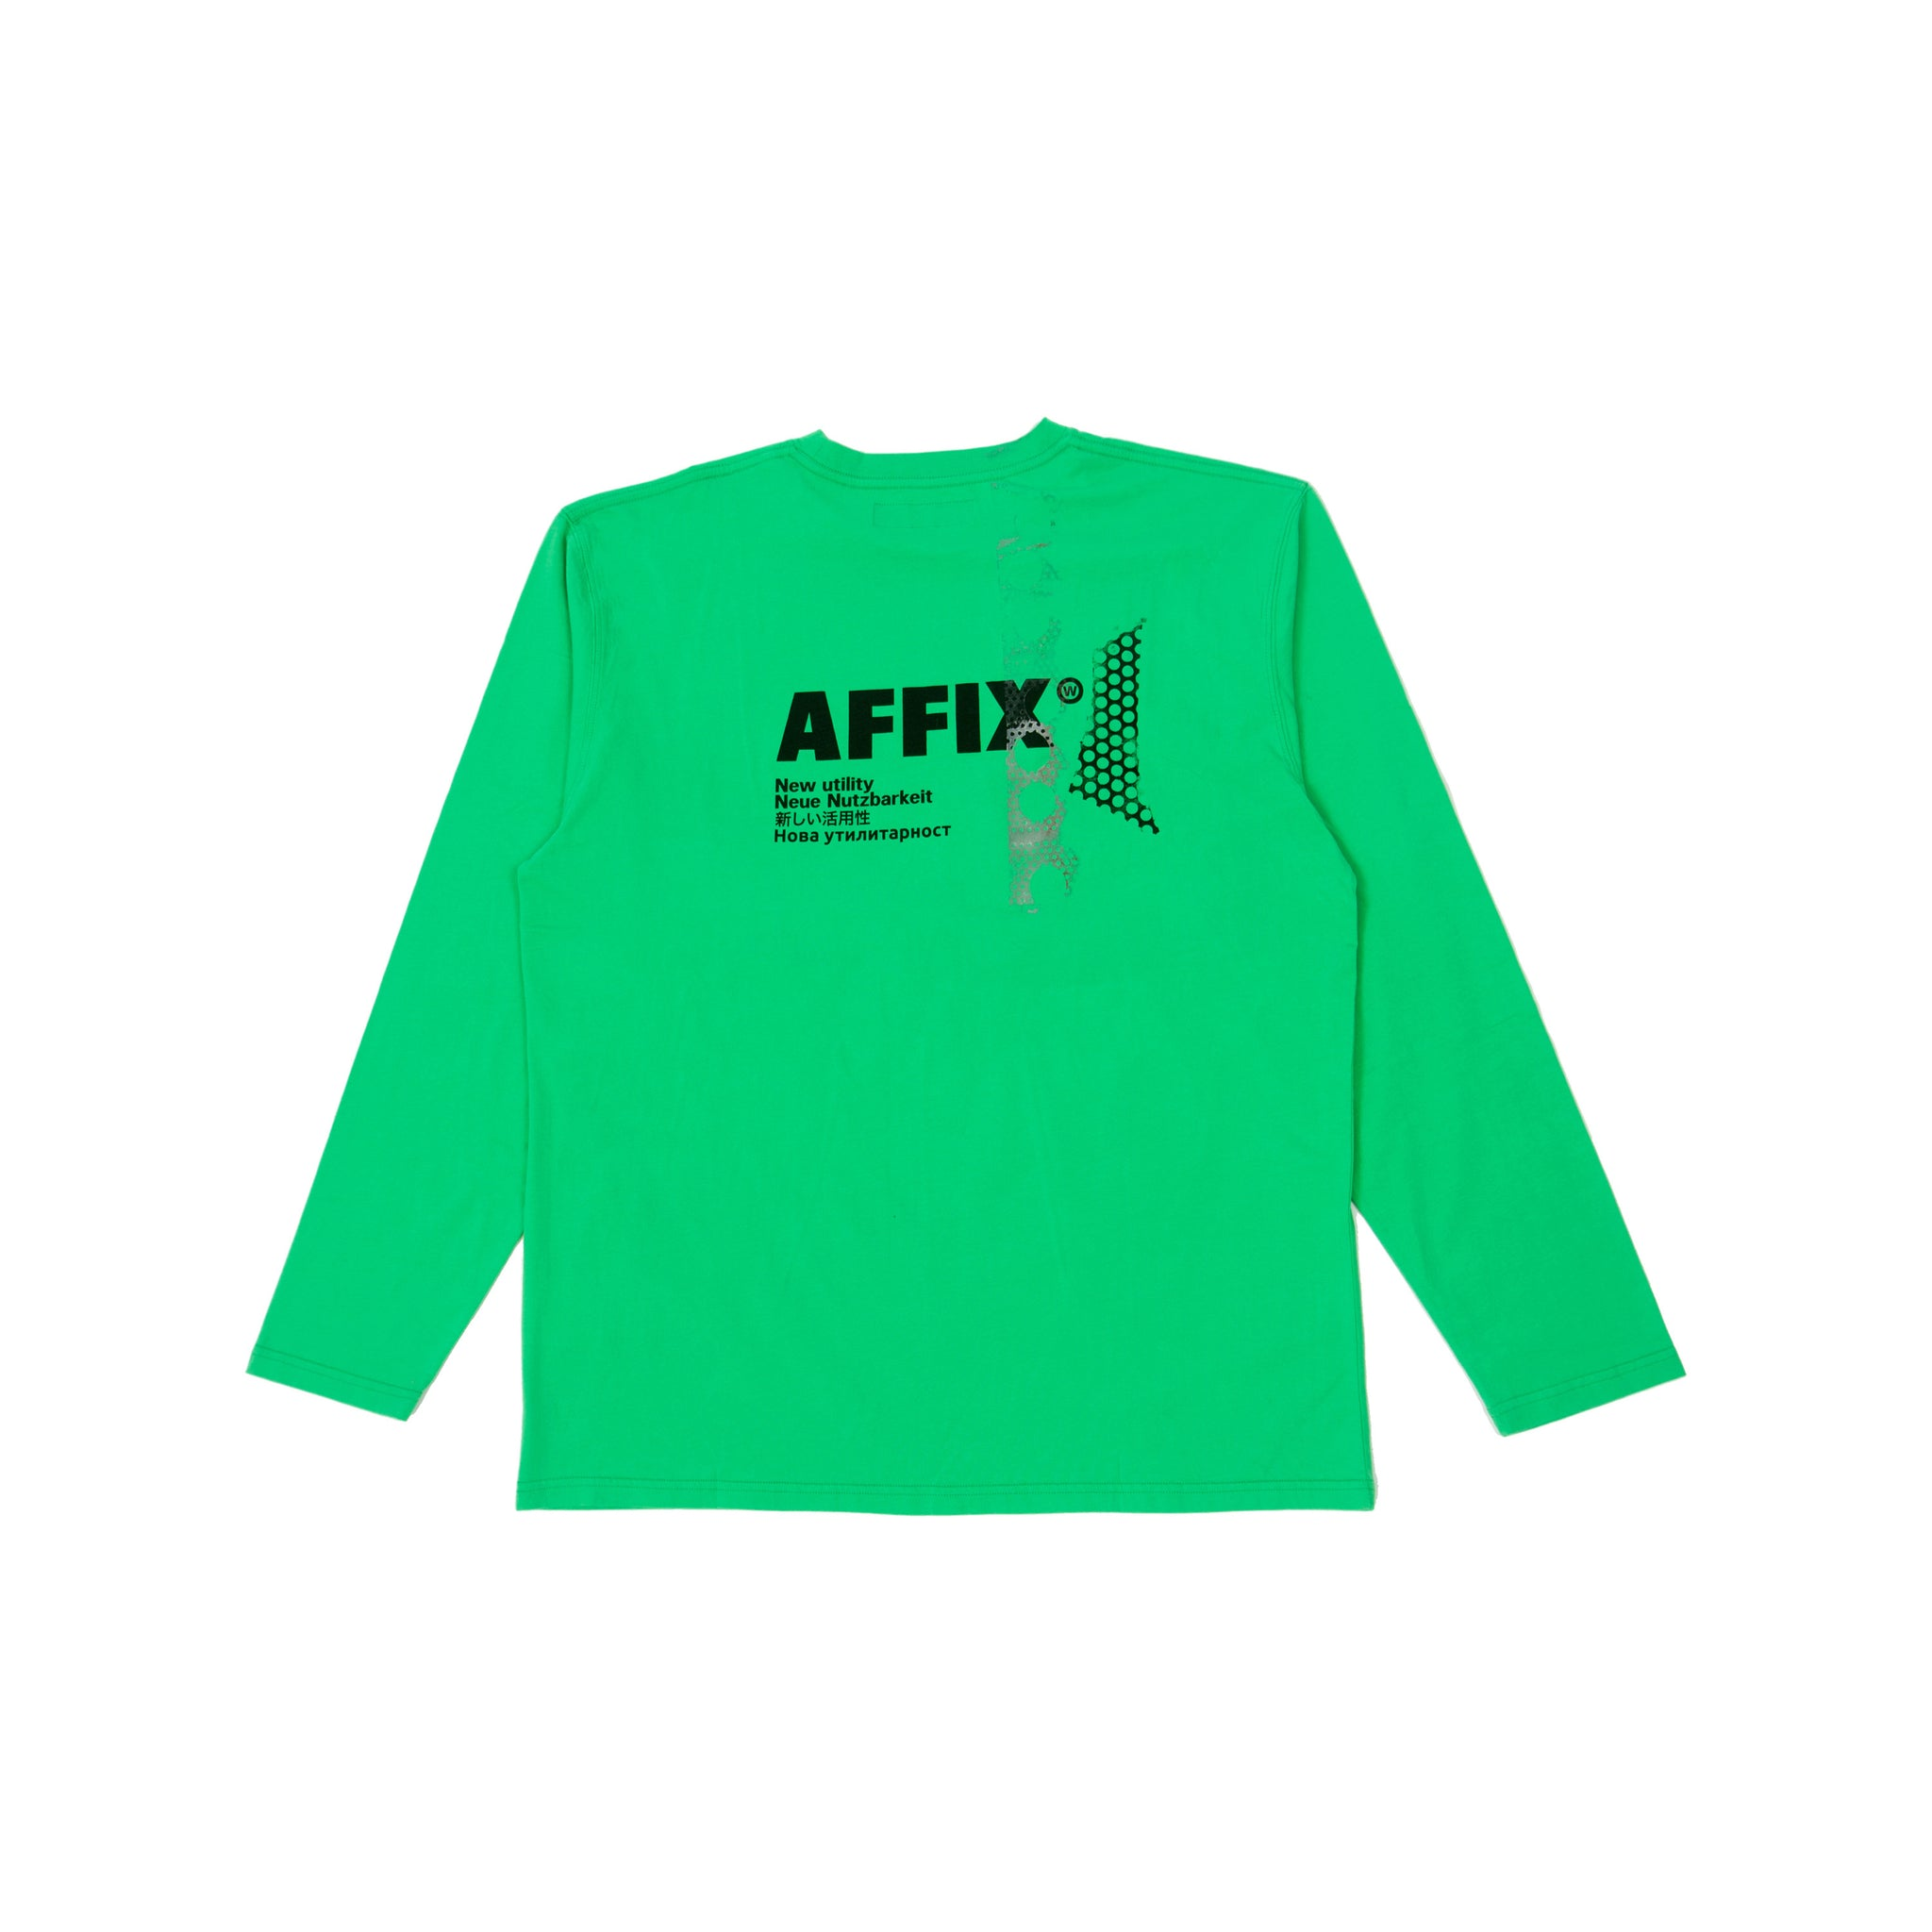 AFFIX re WORKS T-SHIRT LS 05 XL